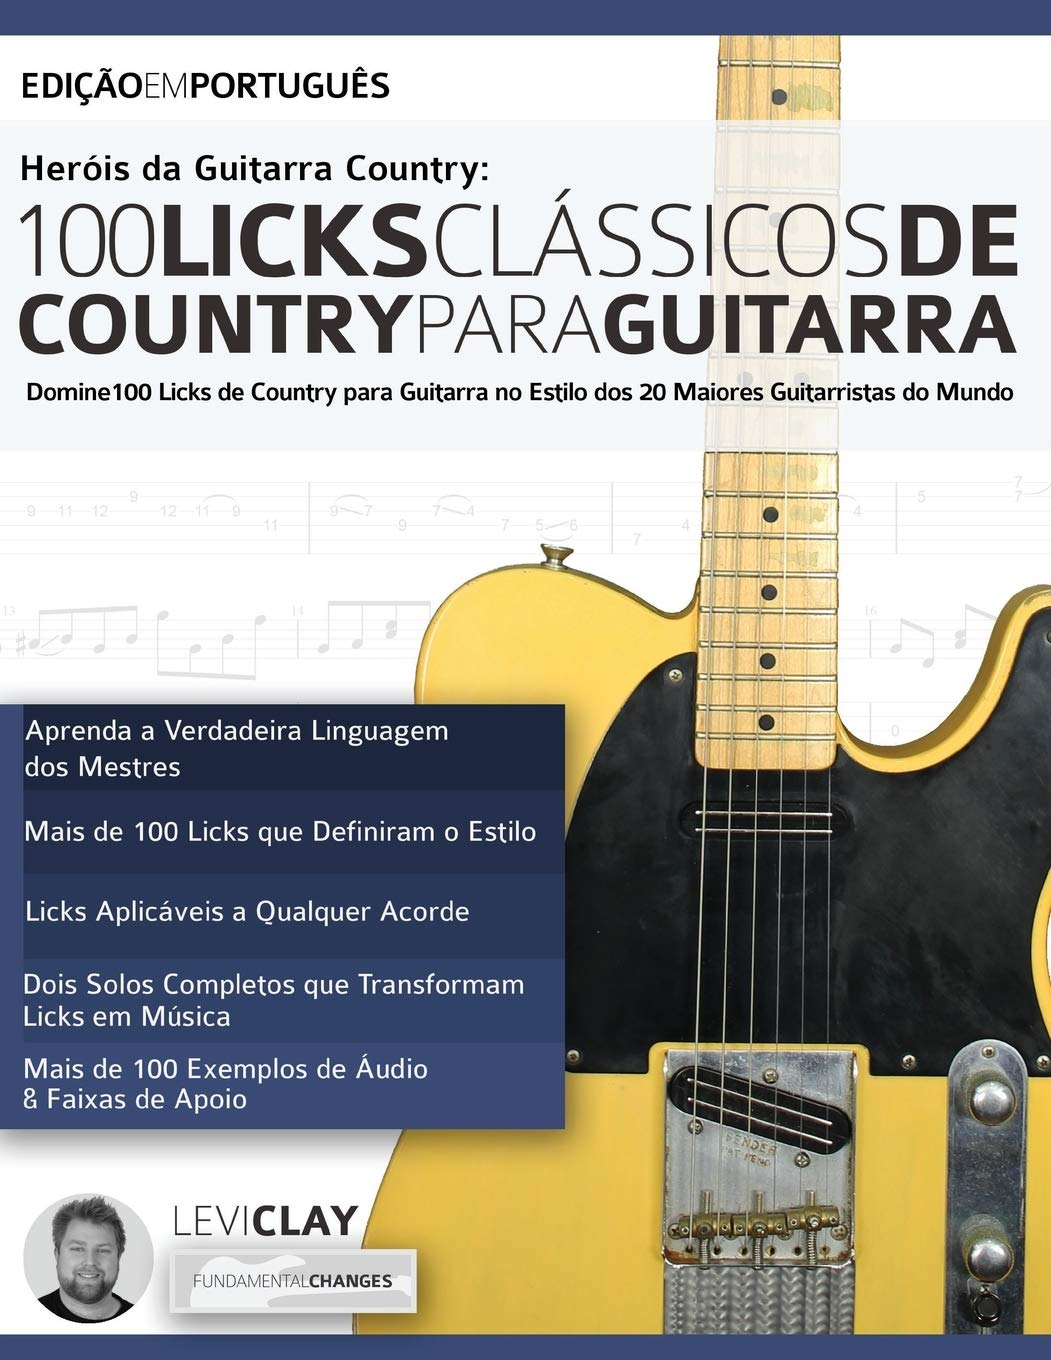 Heróis da Guitarra Country - 100 Licks Clássicos de Country Para Guitarra: Domine 100 Licks de Country para Guitarra no Estilo dos 20 Maiores Guitarristas do Mundo Licks de Guitarra: Amazon.es: Clay,